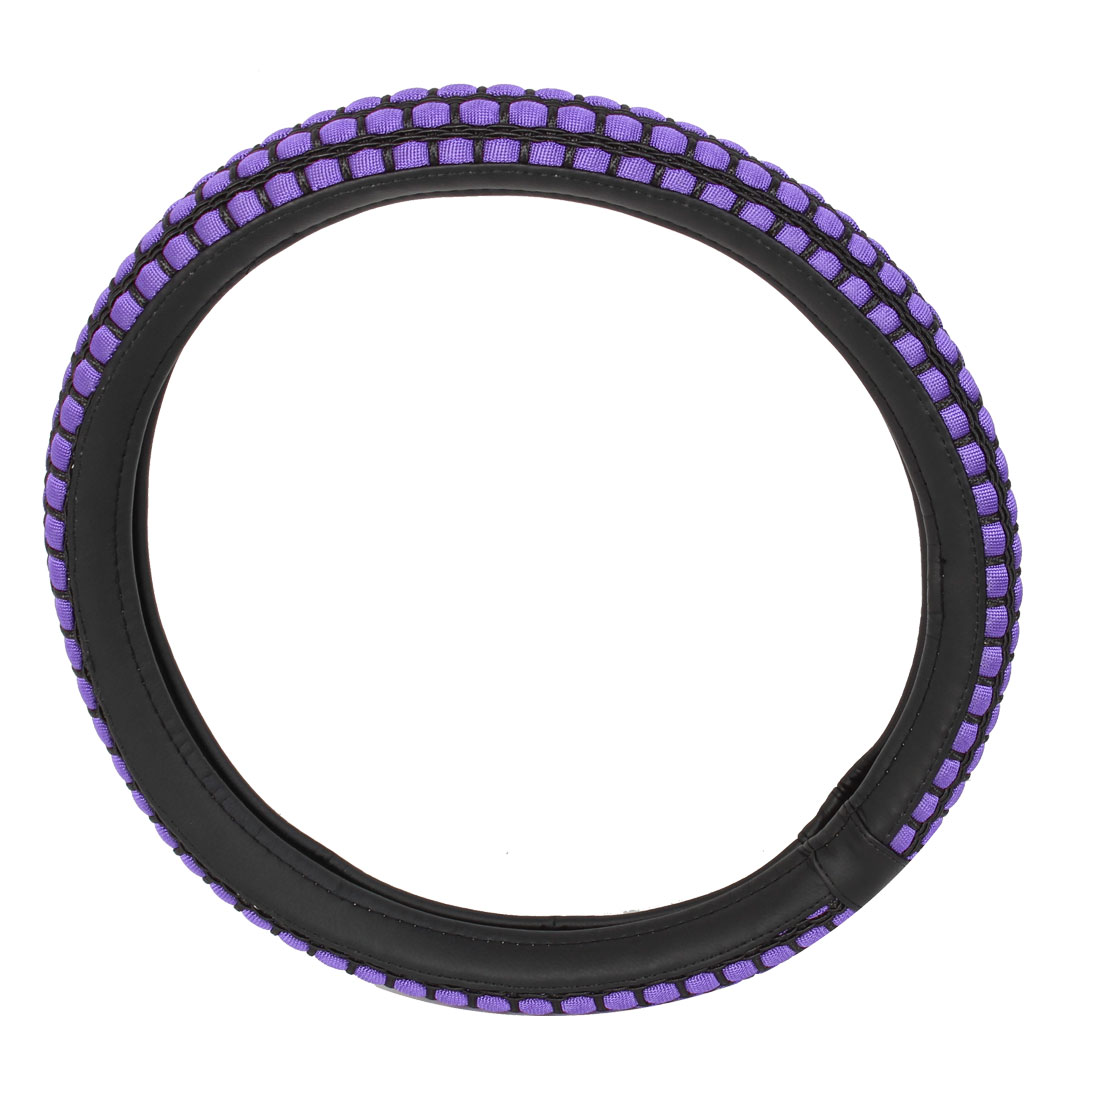 Concave-convex Style Antislip Steering Wheel Cover Purple for Car Vehicle